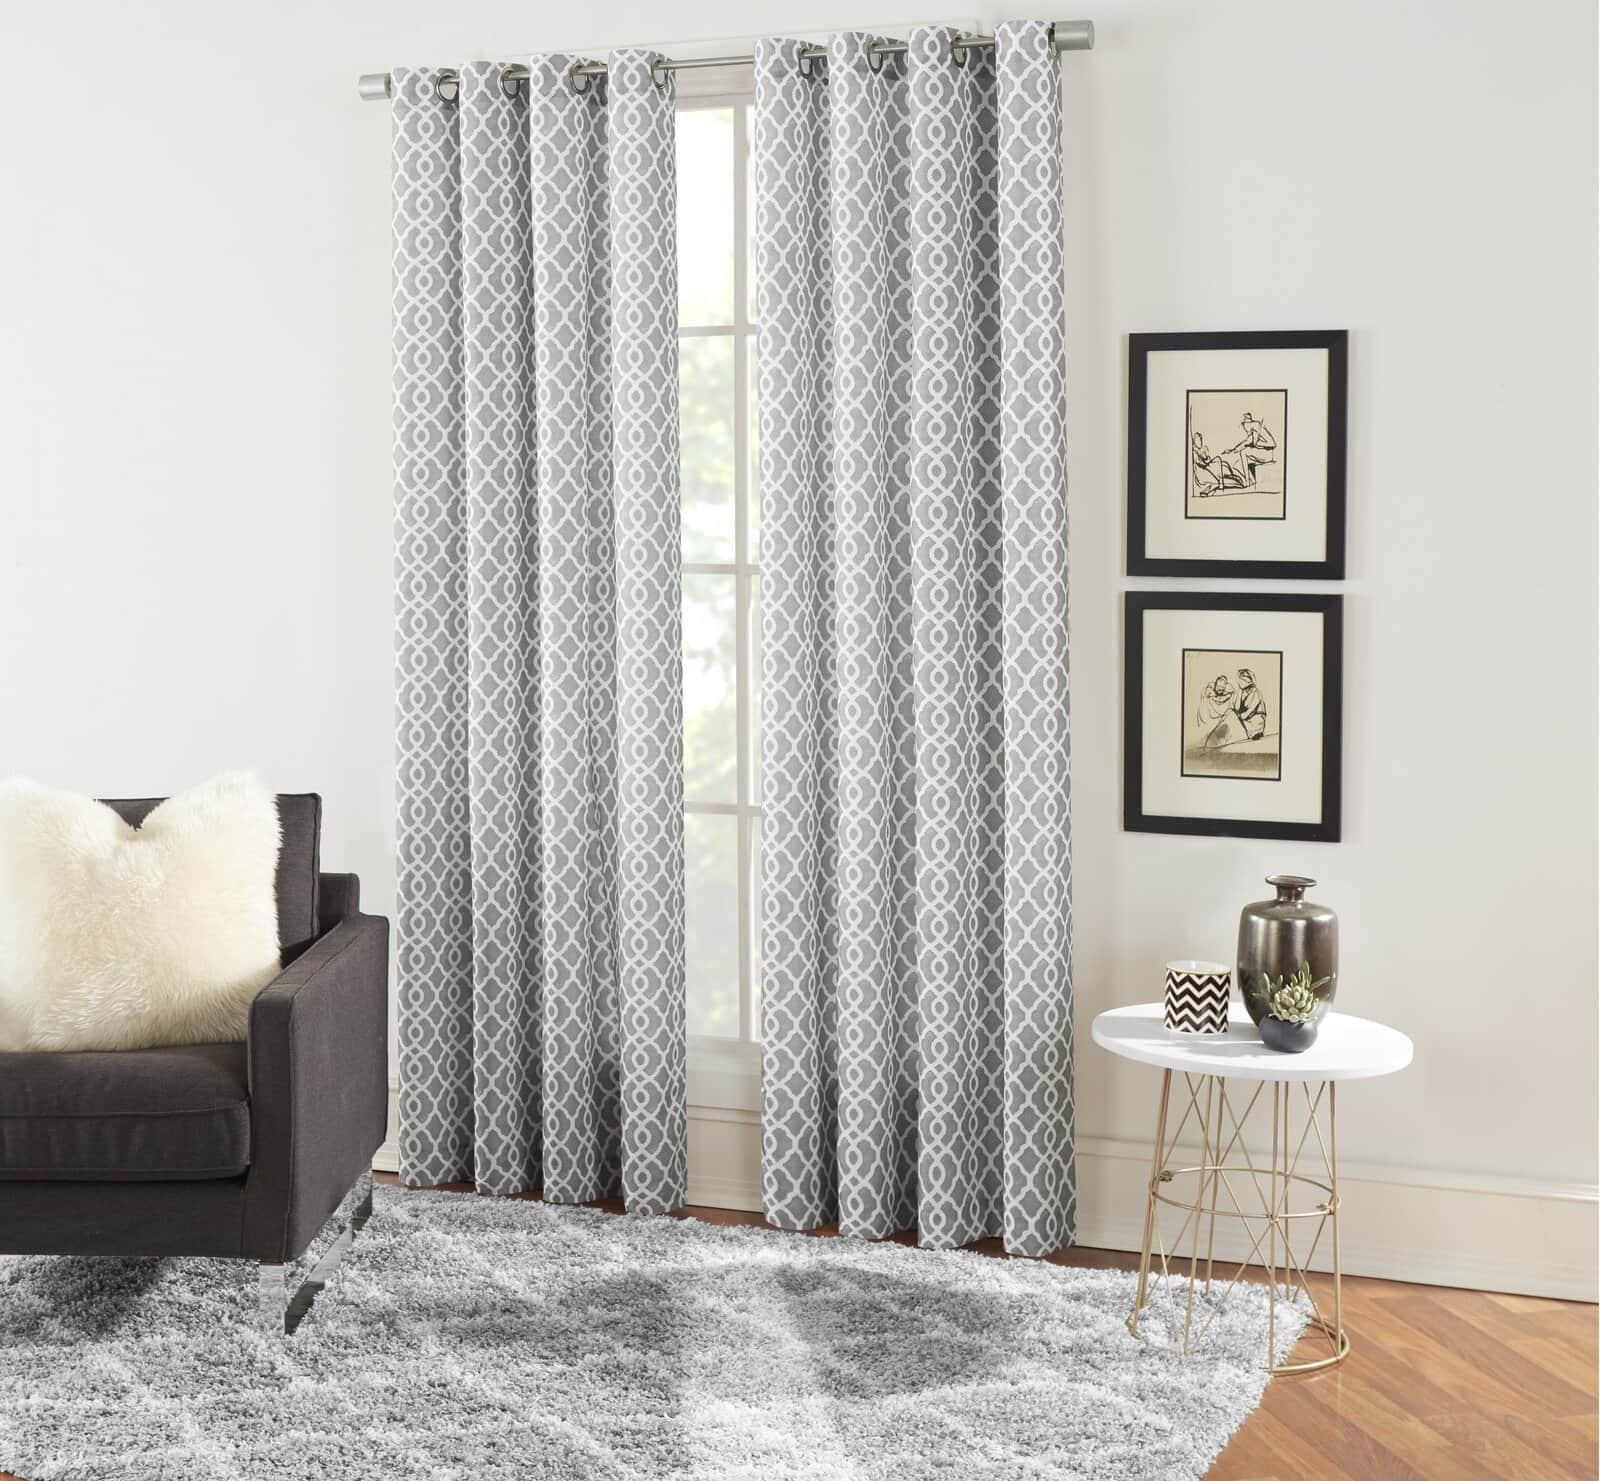 Light Grey Patterned Curtains For a Simple, Chic Look